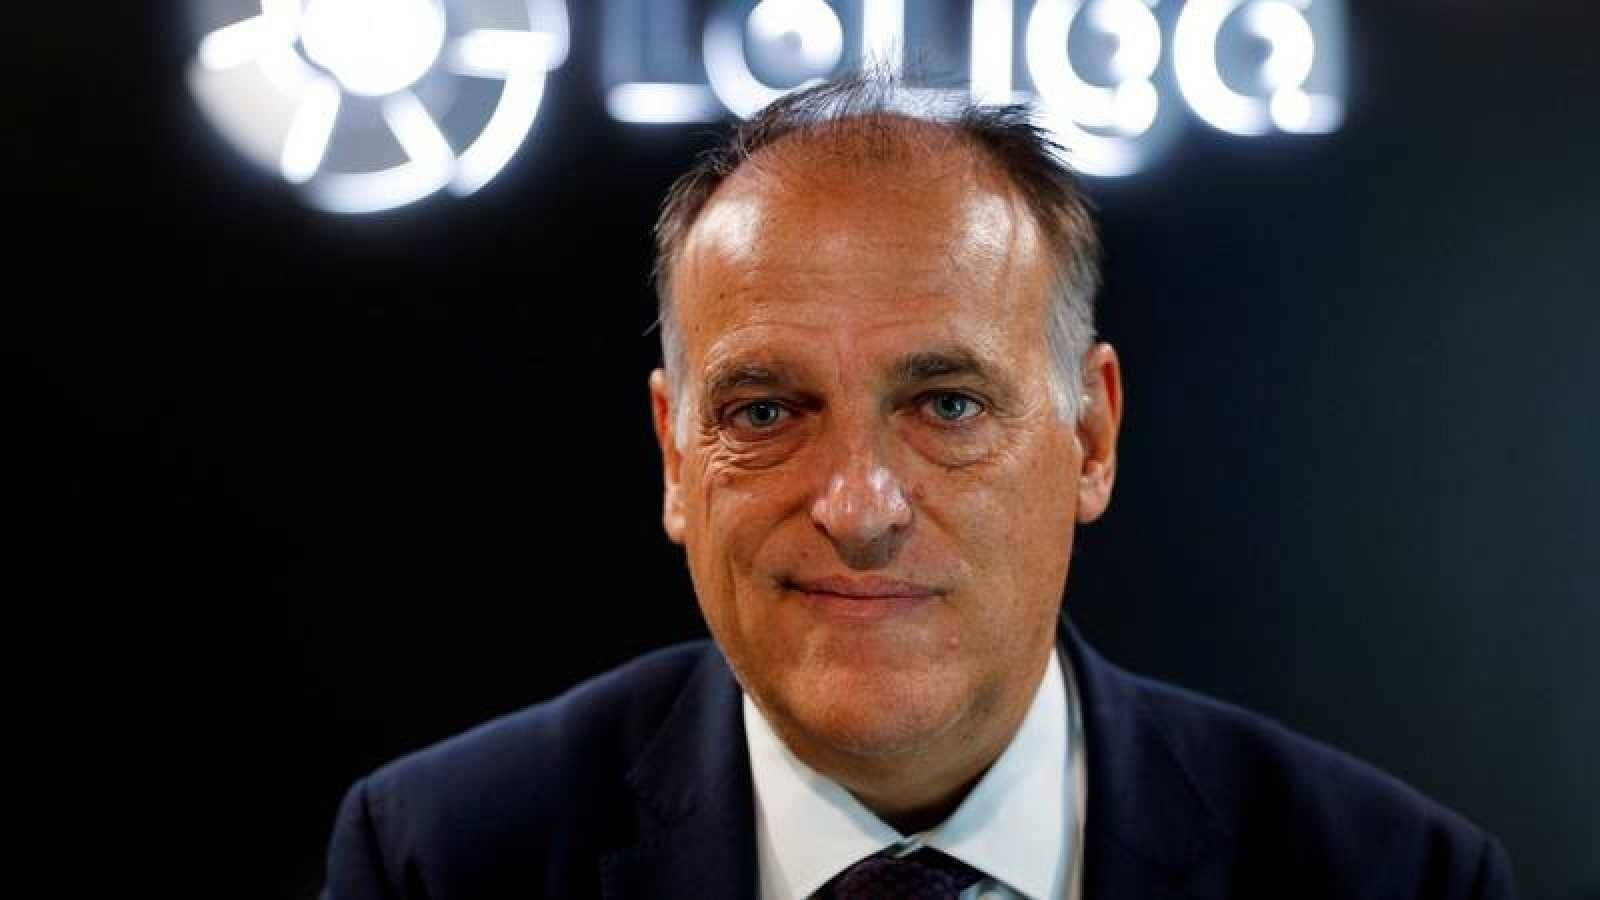 RFEF labeled LaLiga's deal with CVC as 'totally illegal